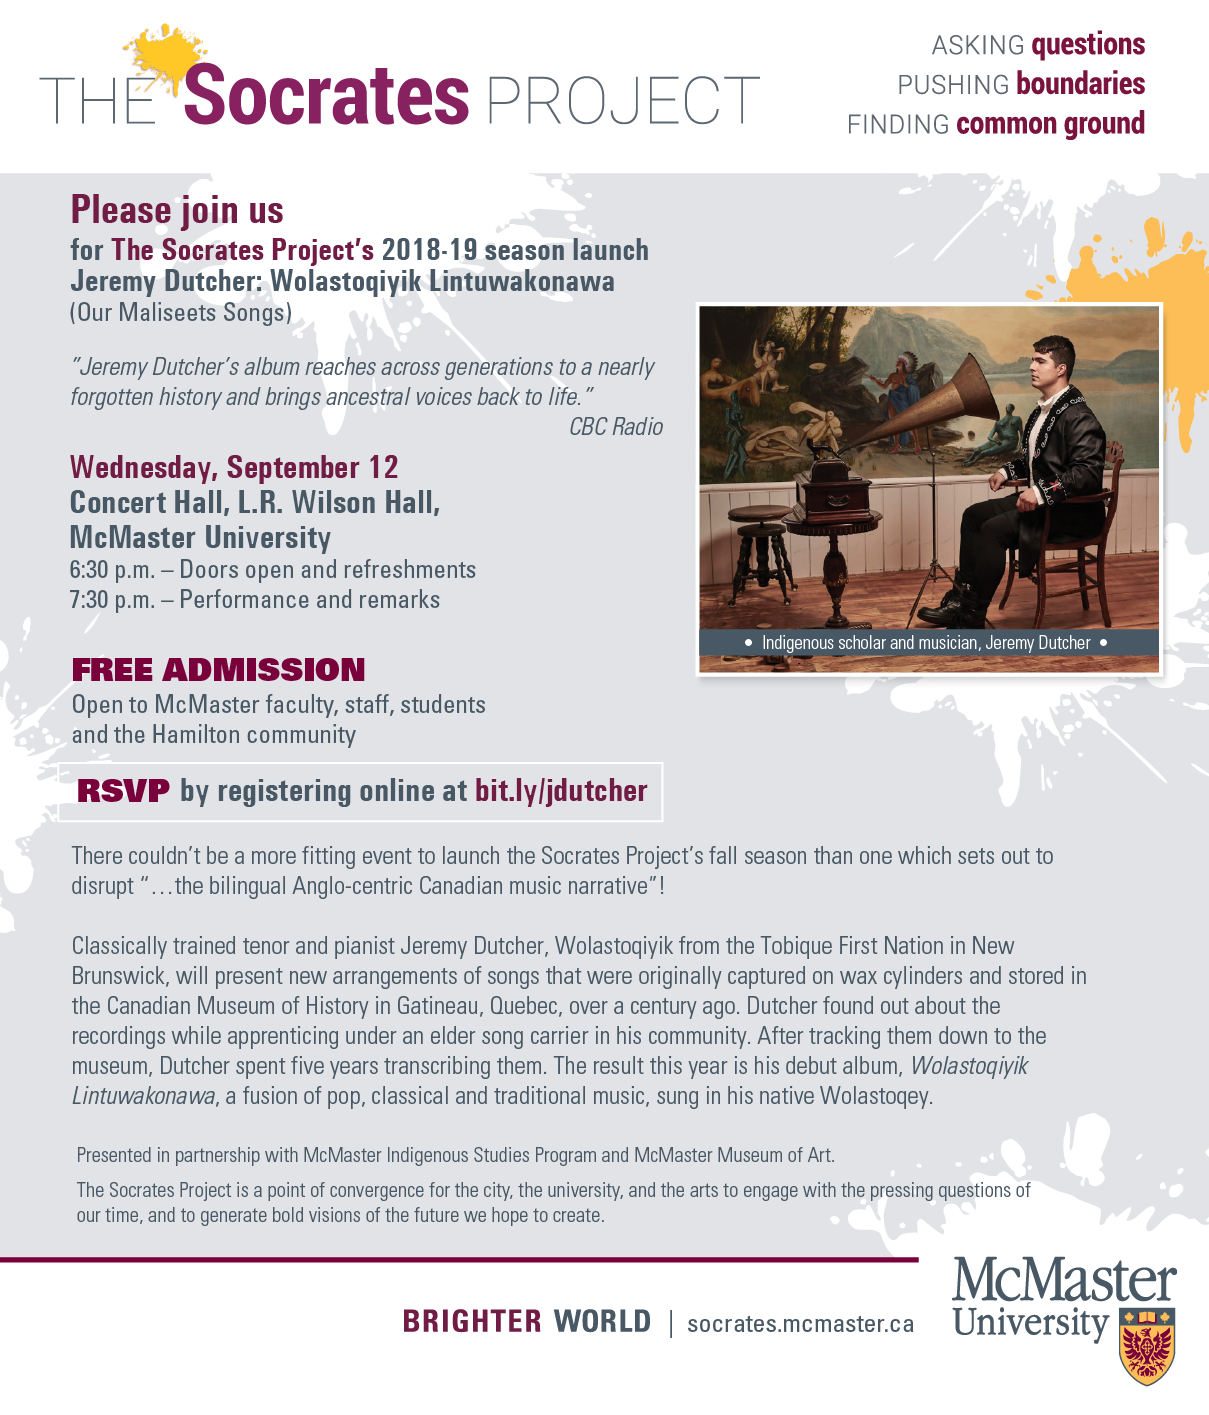 Socrates Project Presents Jeremy Dutcher at McMaster University in partnership with ISP and Museum of Art